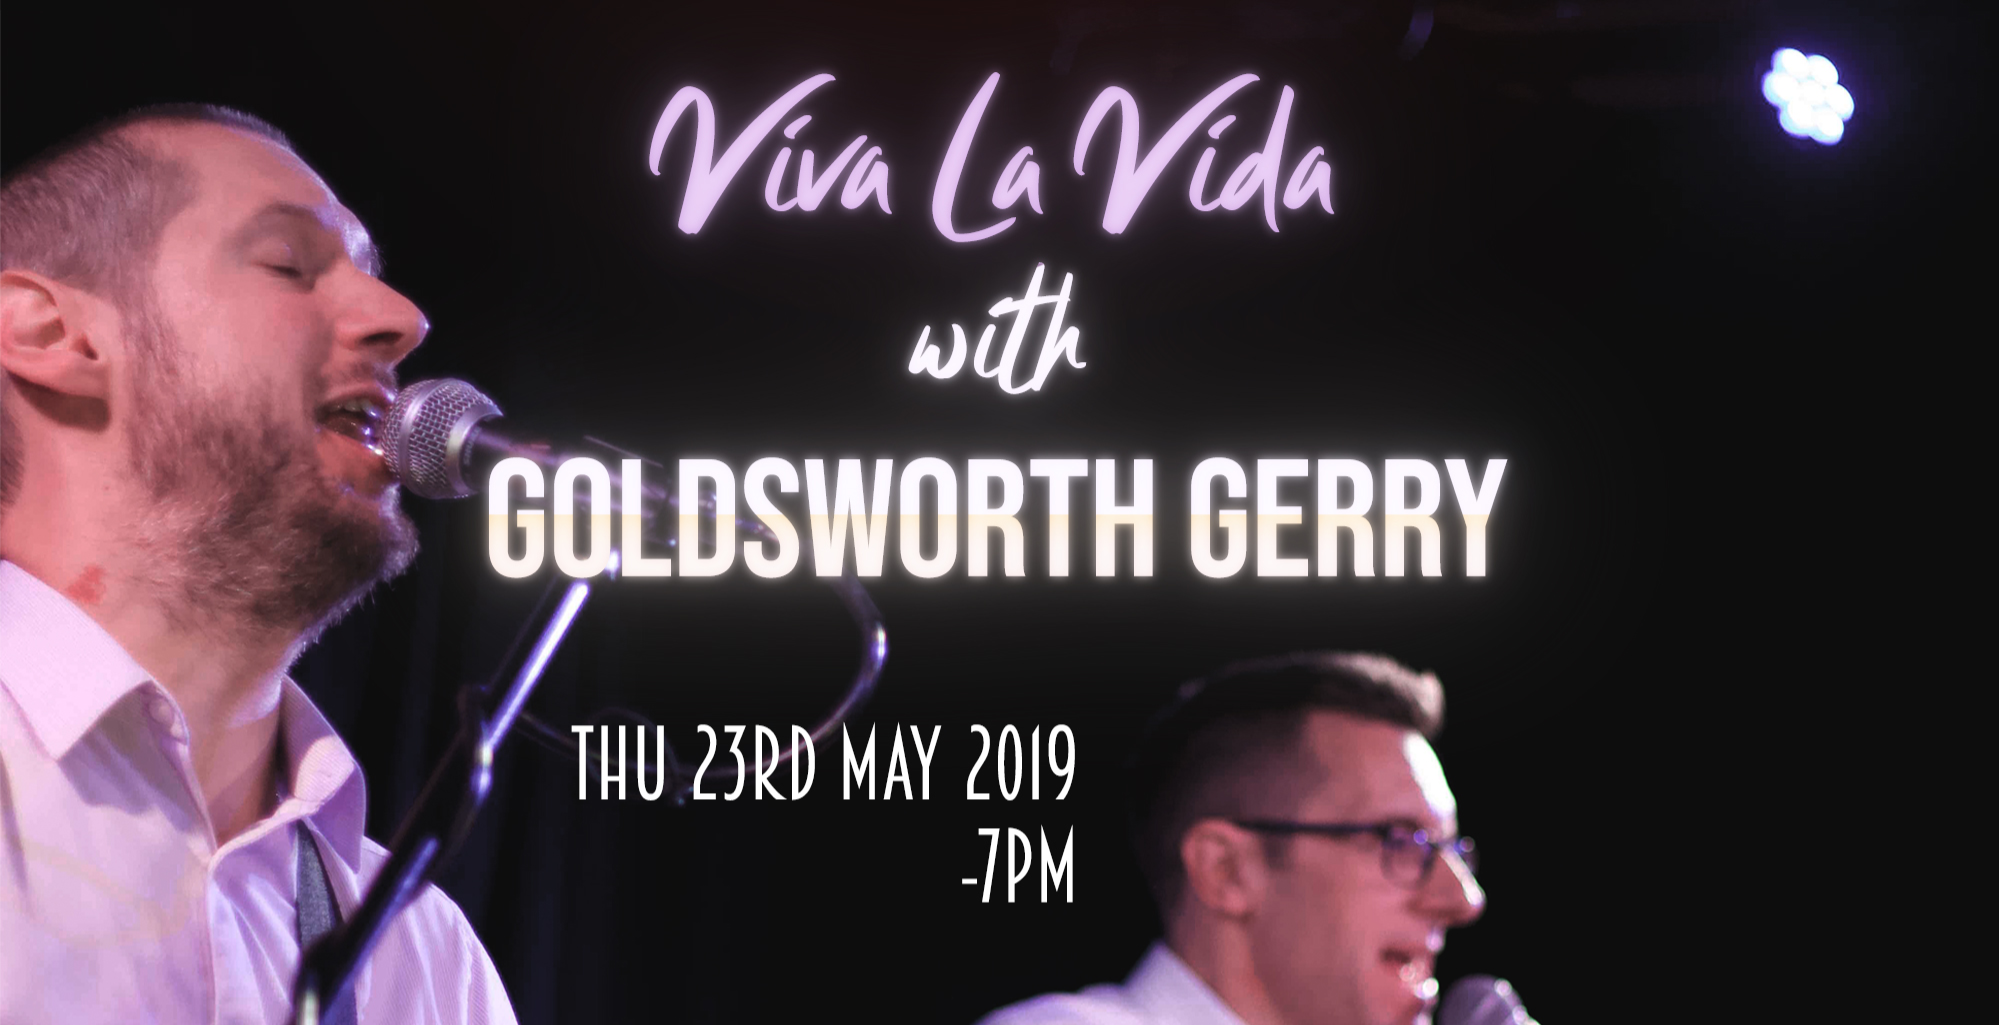 VIVA LA VIDA - Music from the 90's/00's with Goldsworth Gerry